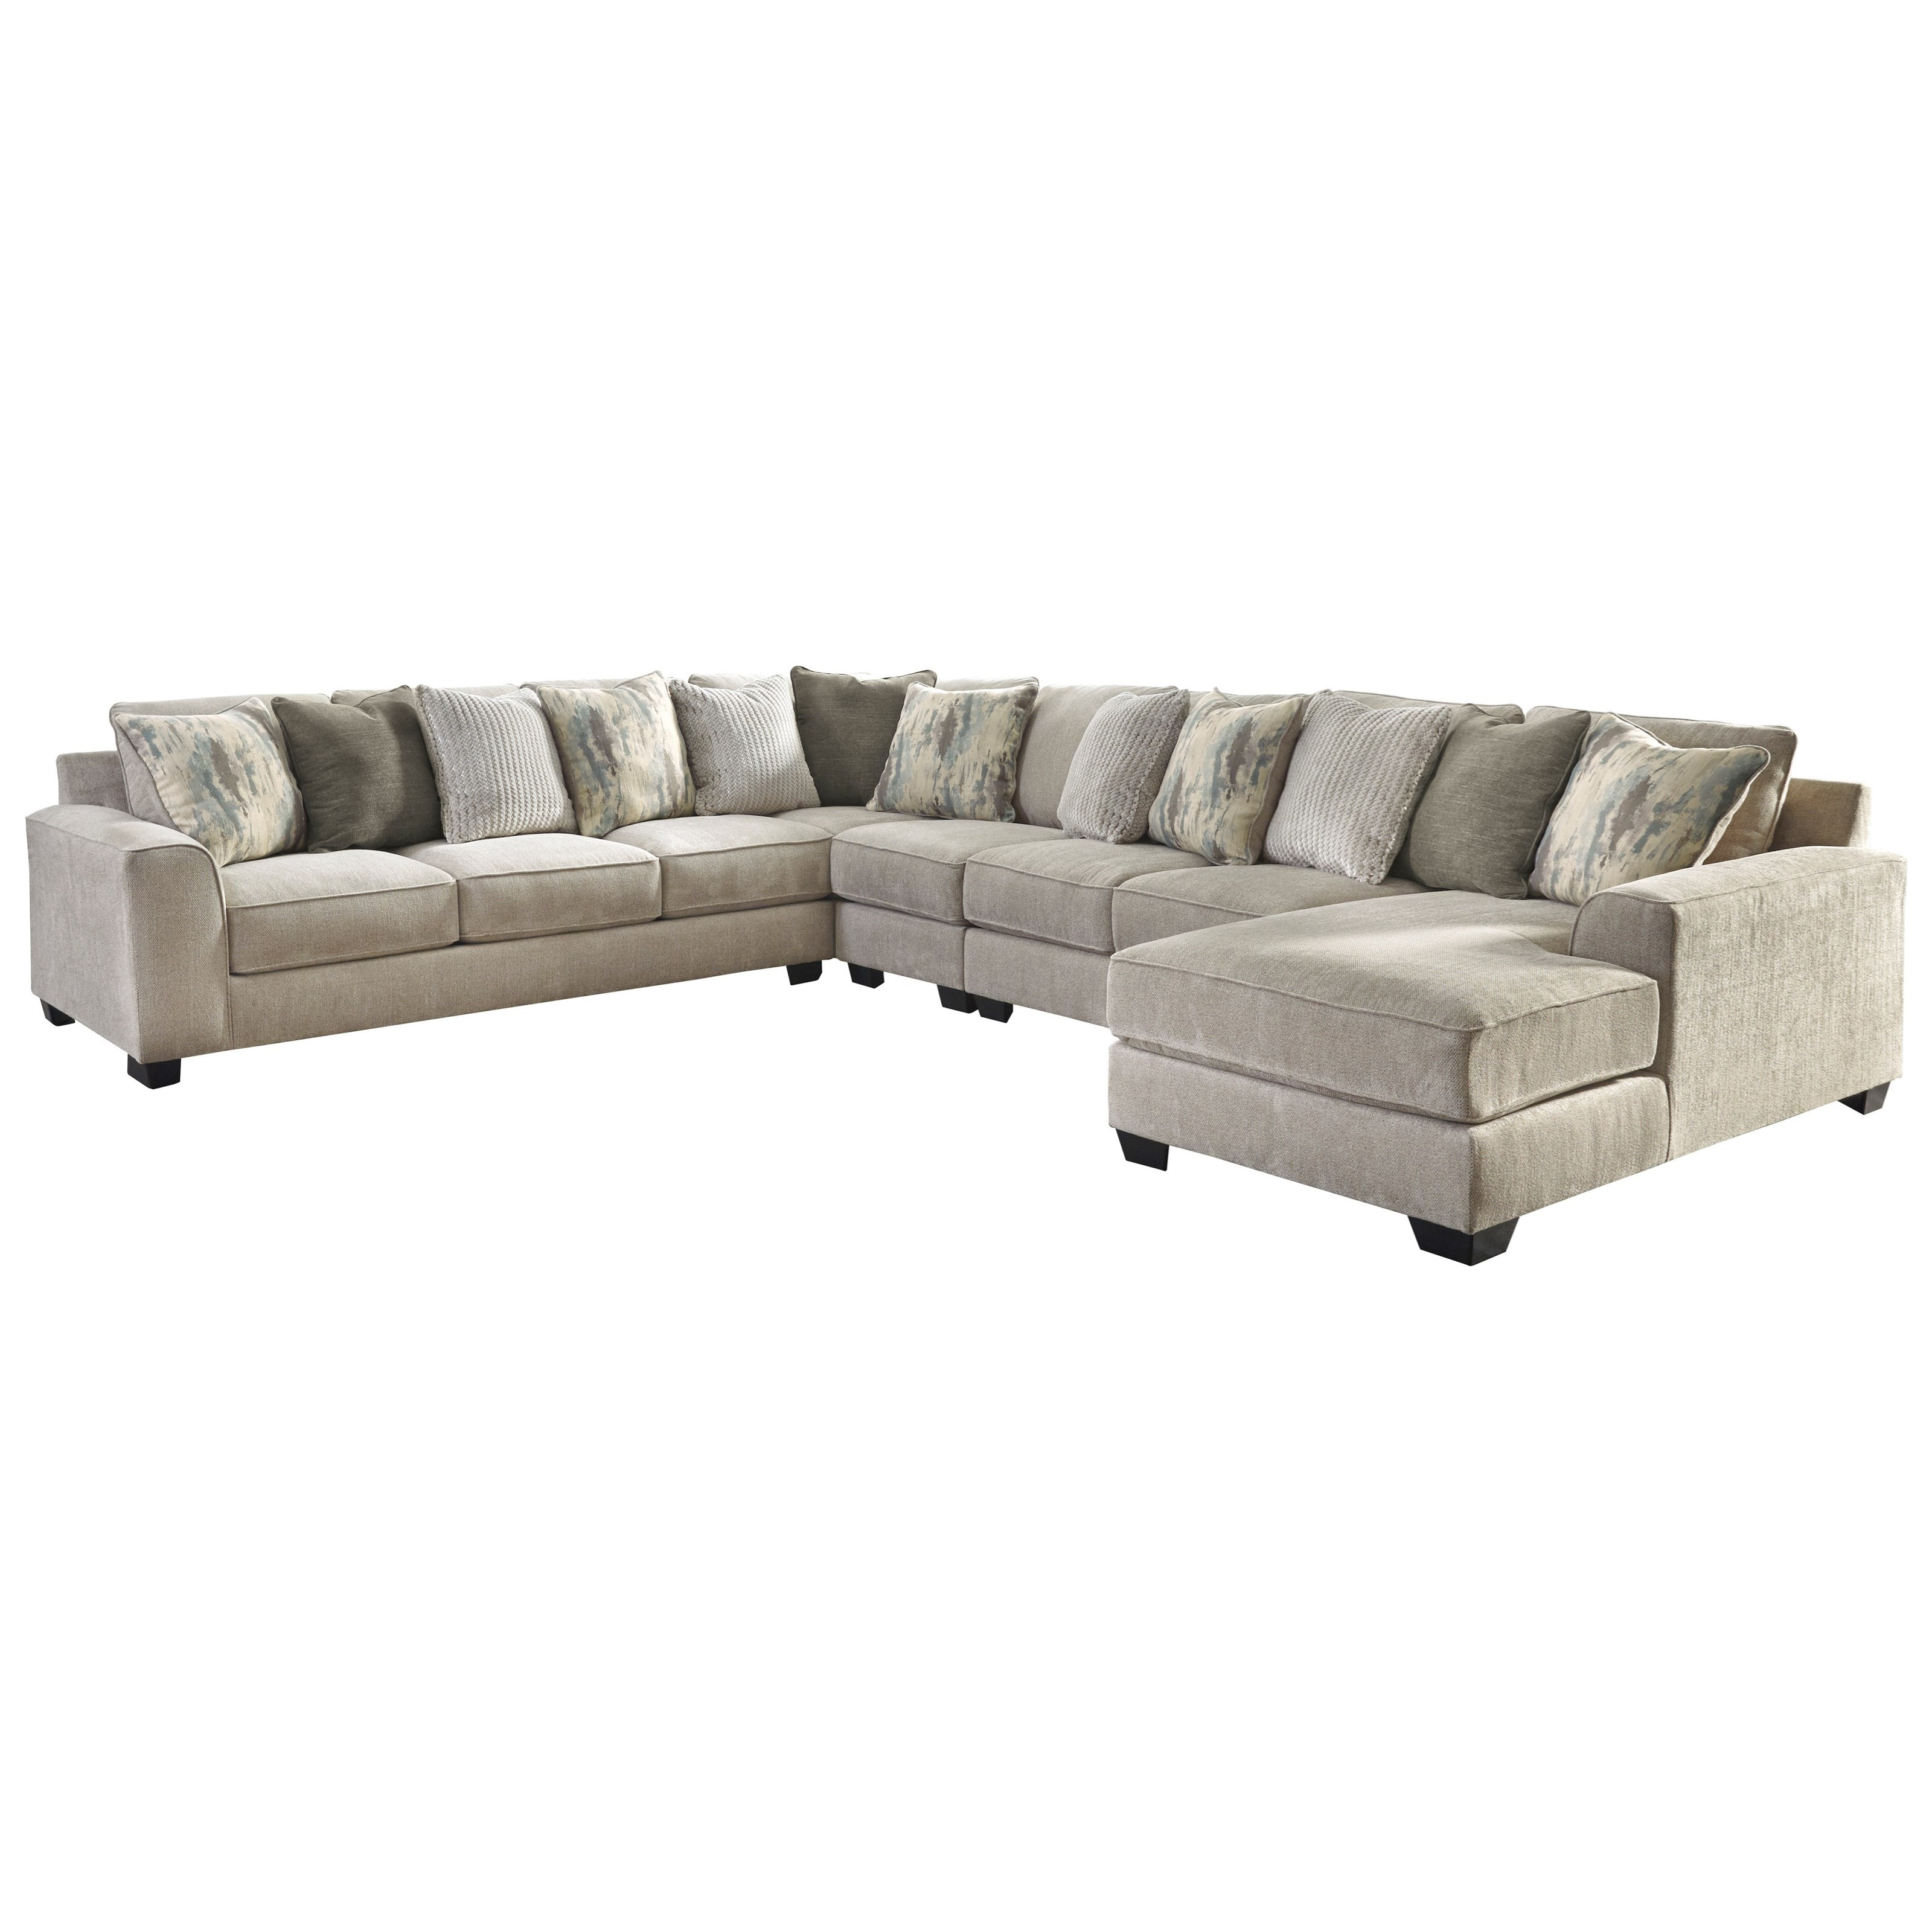 Ardsley 5-Piece Sectional with Right Chaise by Benchcraft at Standard Furniture